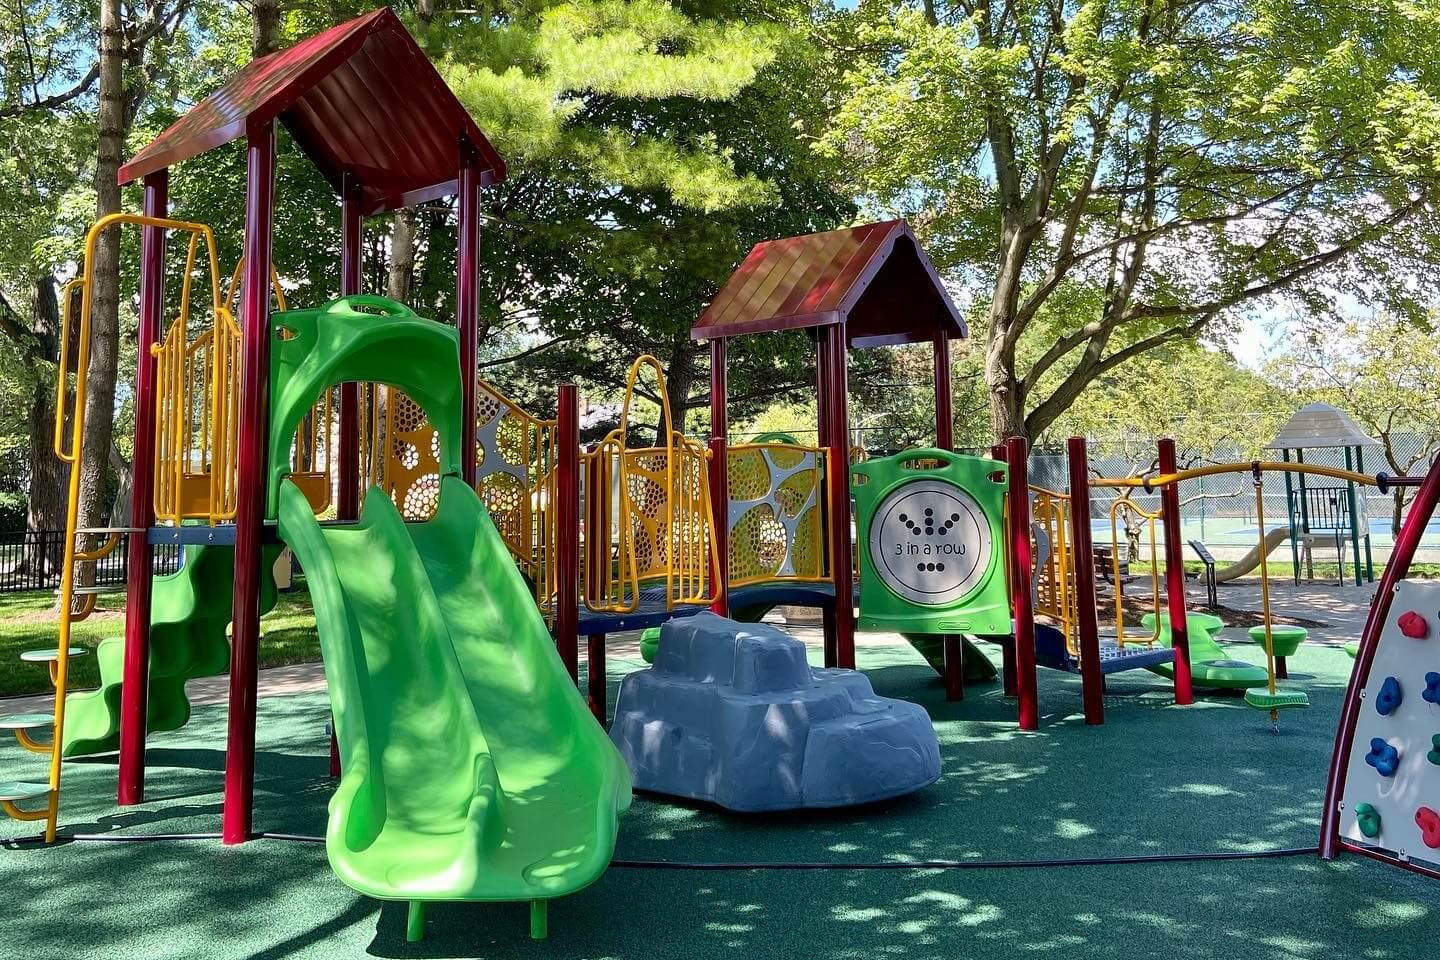 Best Playgrounds For Toddlers In Metro Detroit